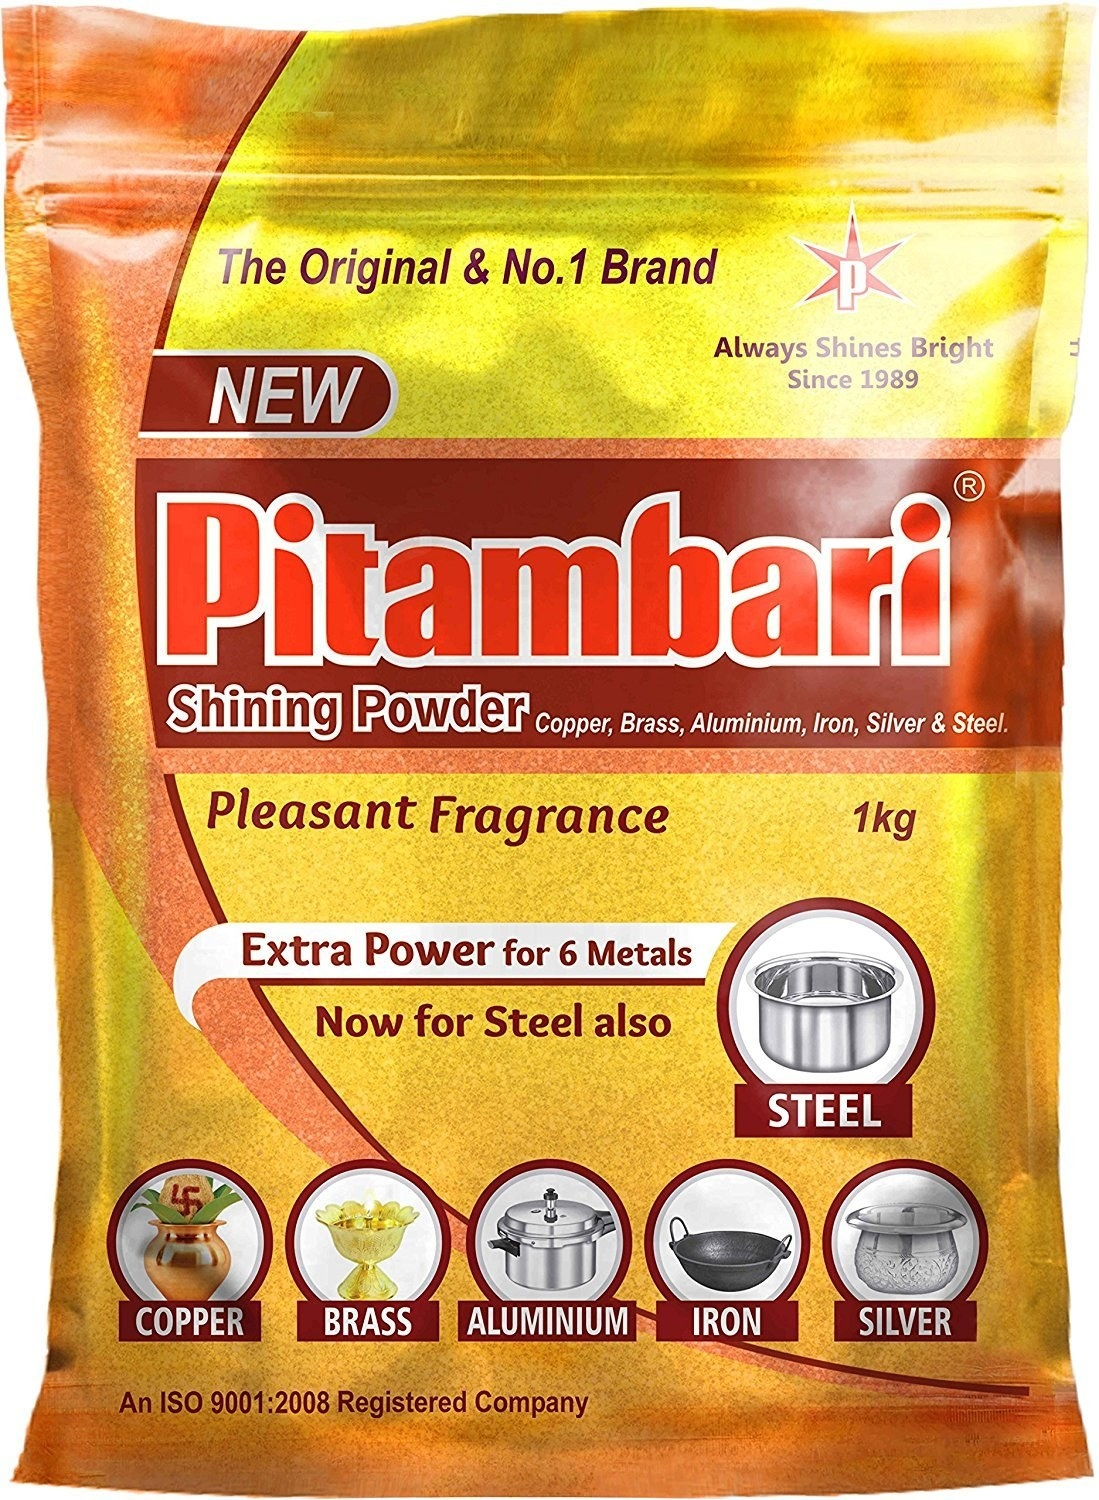 A packet of Pitambari shining powder